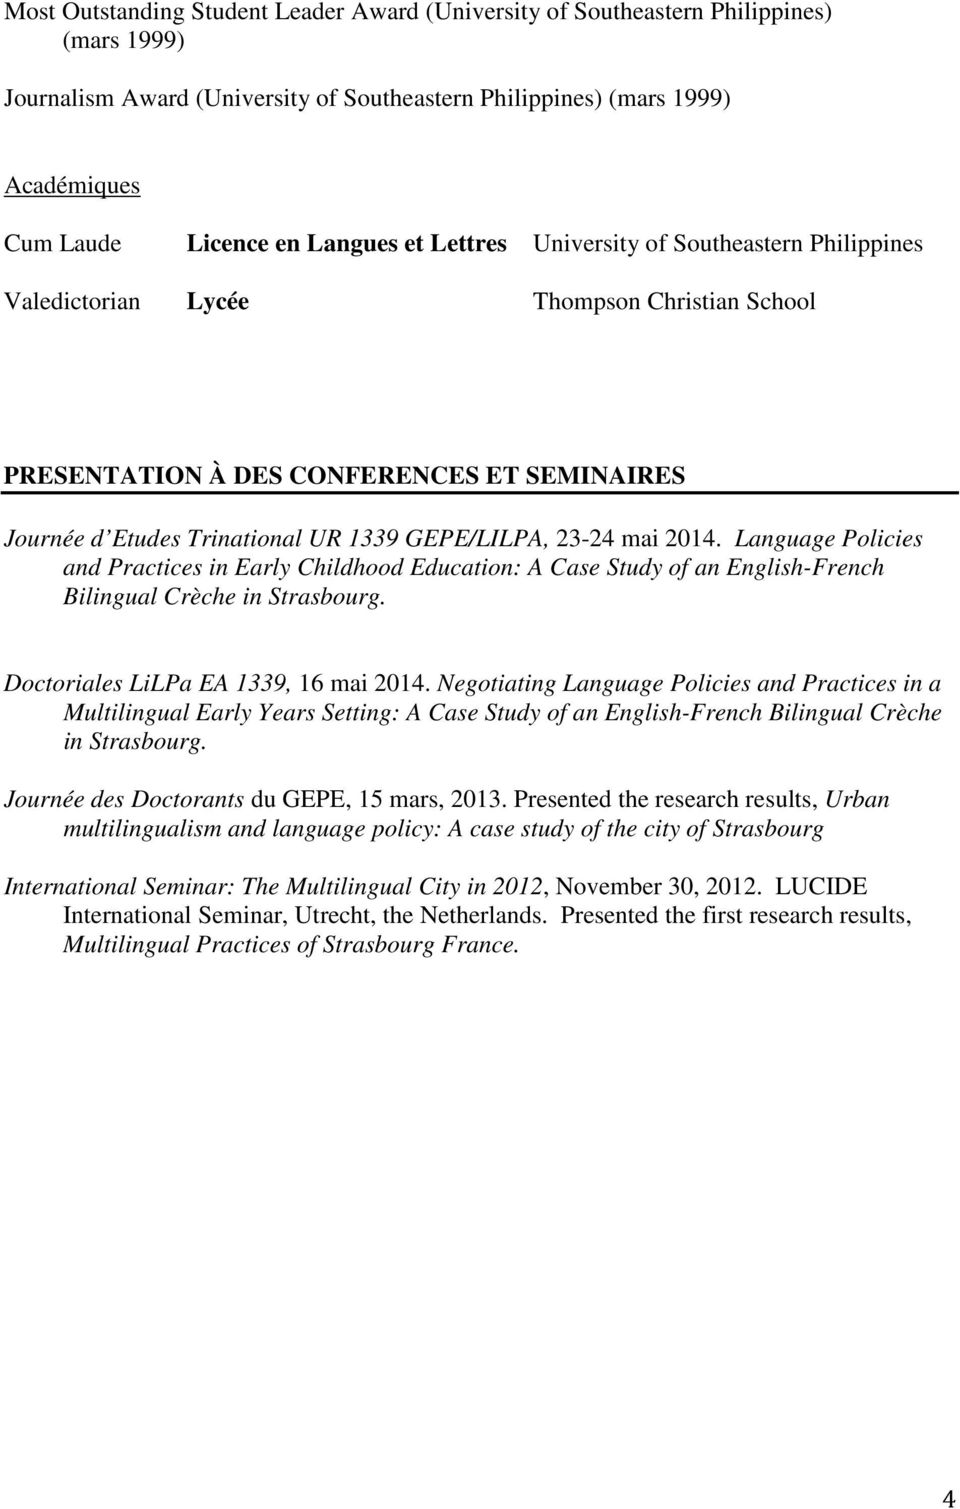 Language Policies and Practices in Early Childhood Education: A Case Study of an English-French Bilingual Crèche in Strasbourg. Doctoriales LiLPa EA 1339, 16 mai 2014.